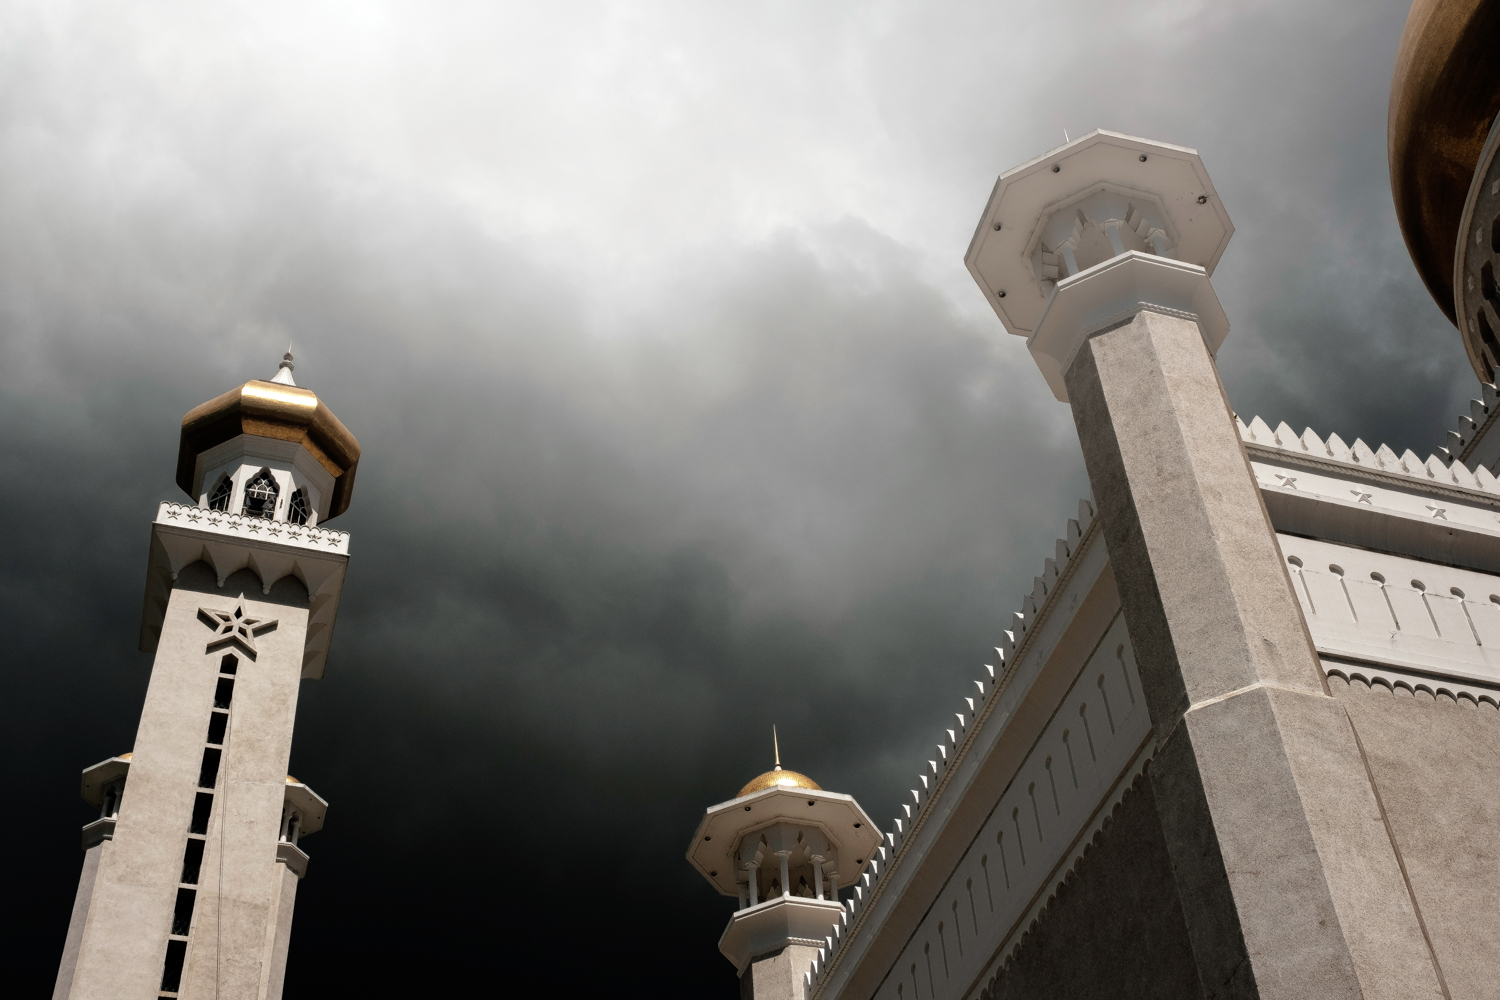 A storm coming in over the Omar Ali Saifuddien Mosque.